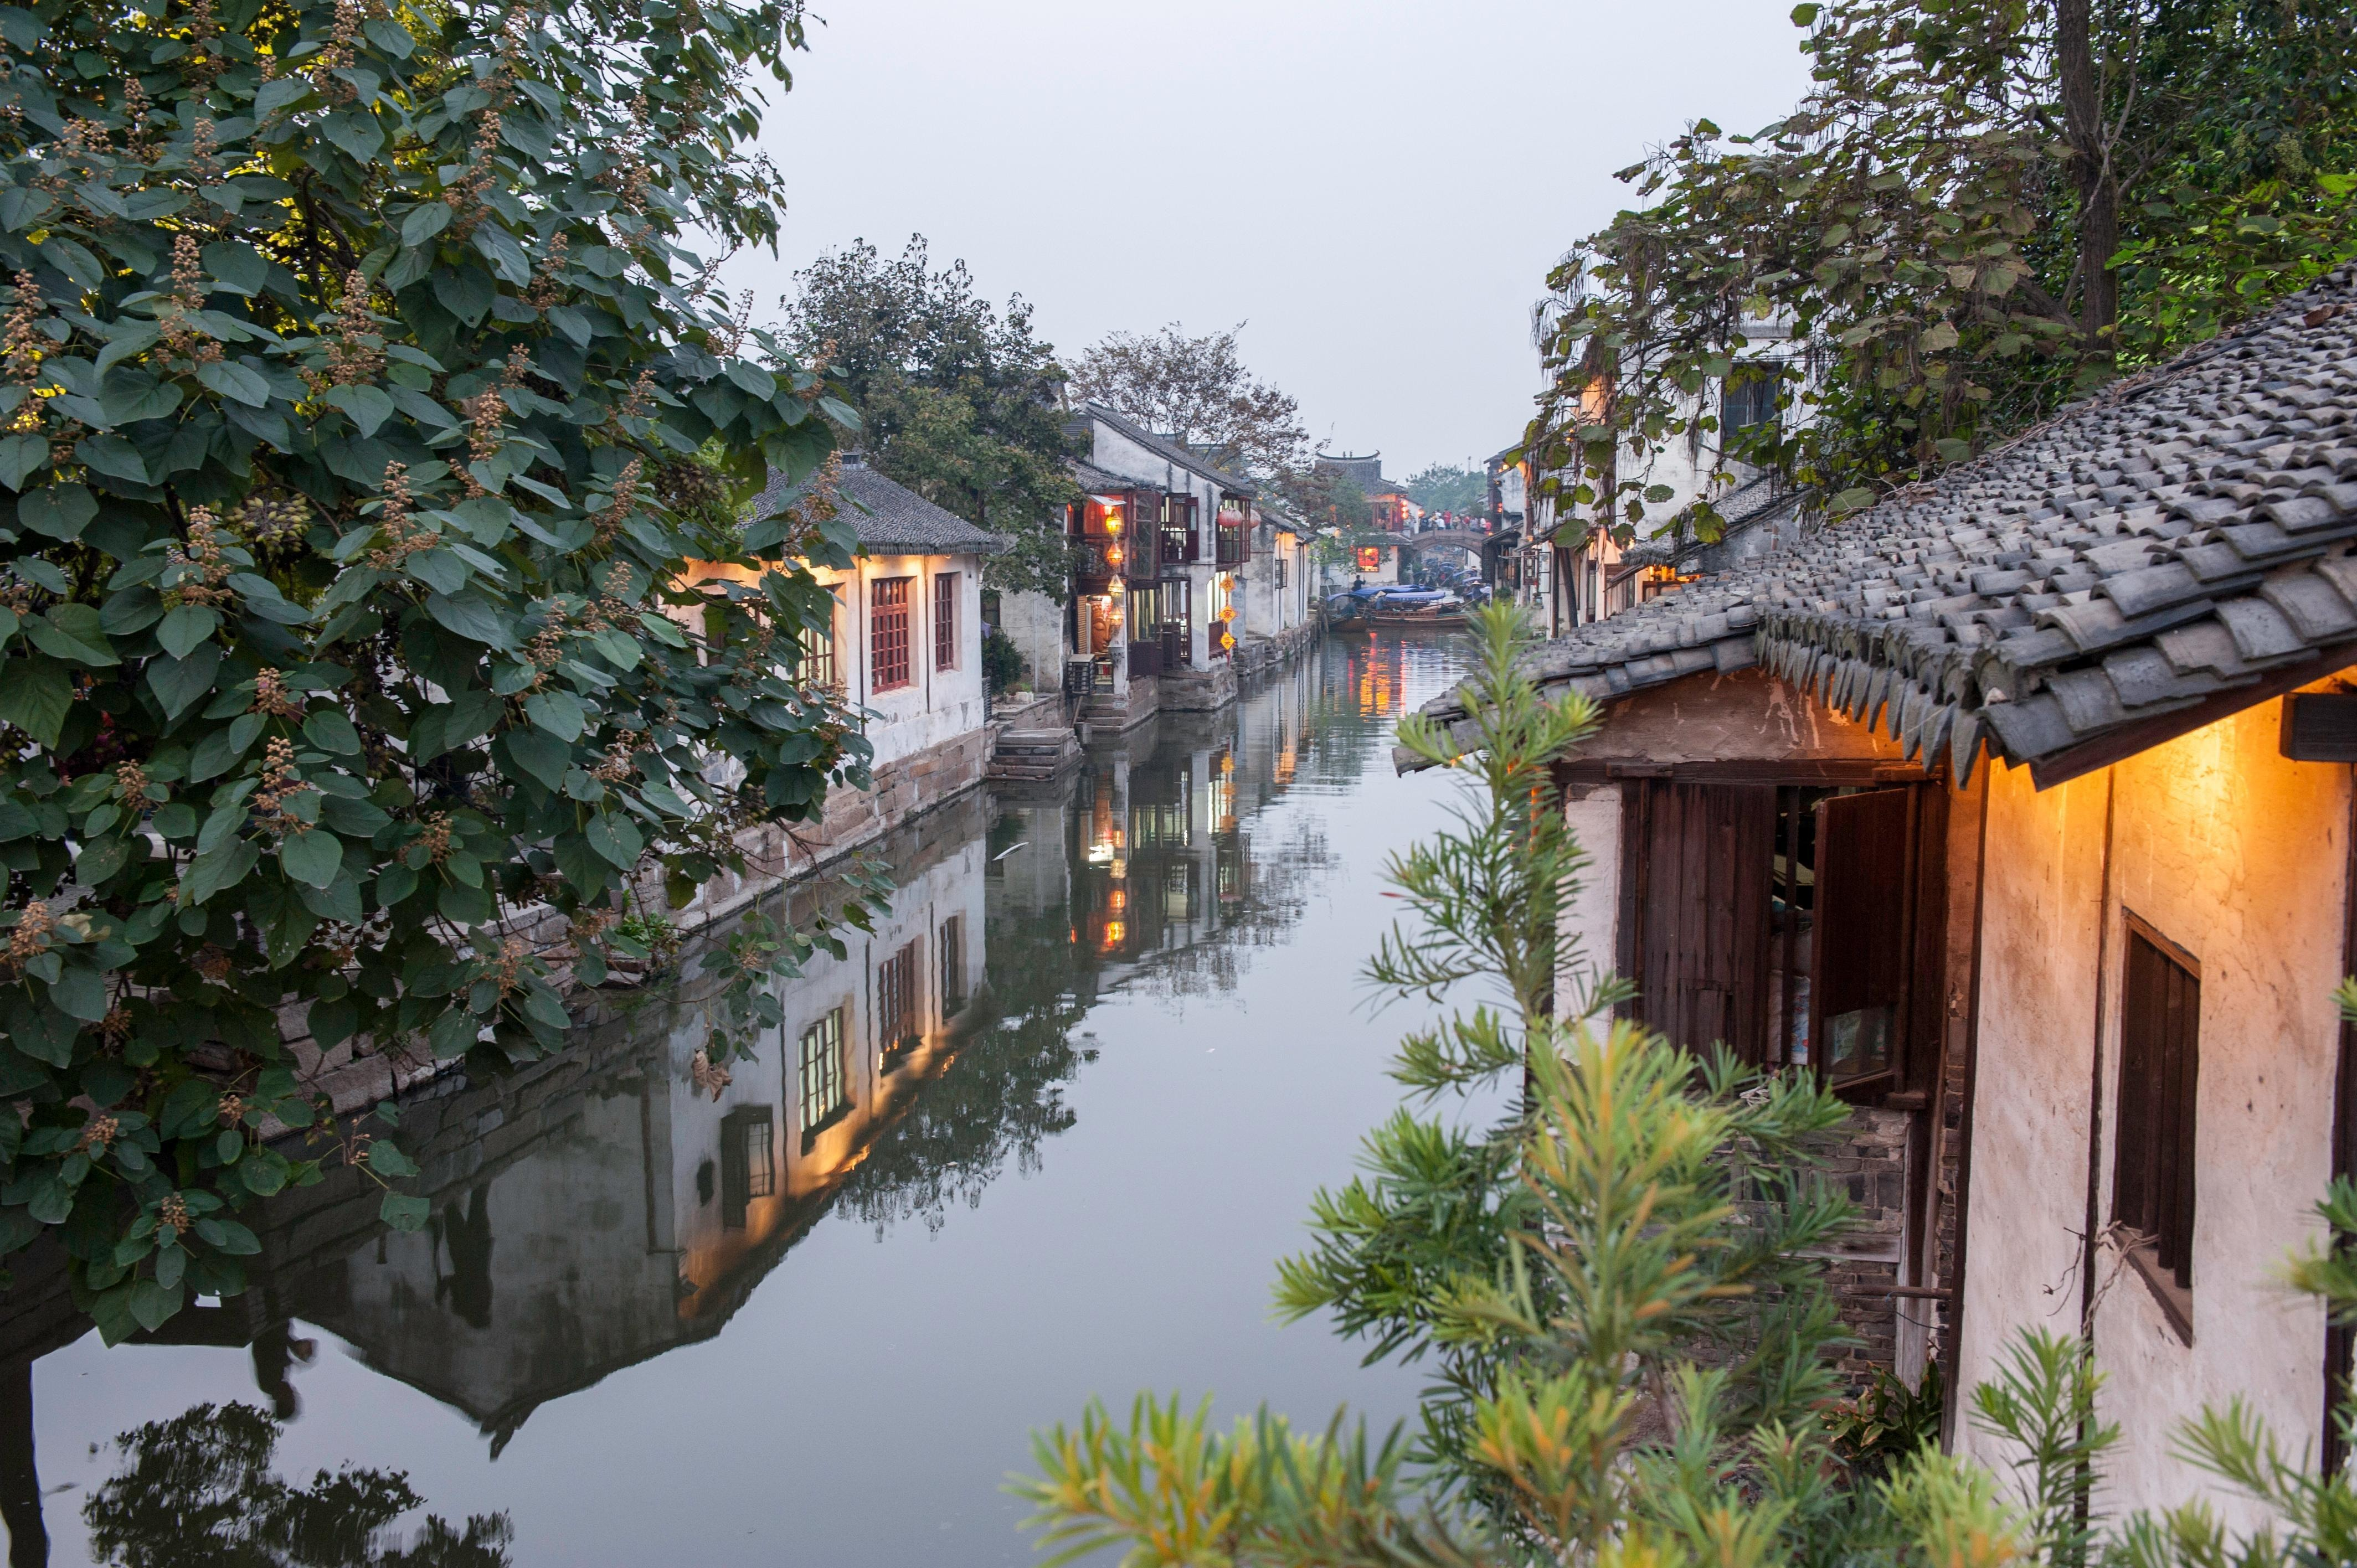 How to Spend 1 Day in Suzhou